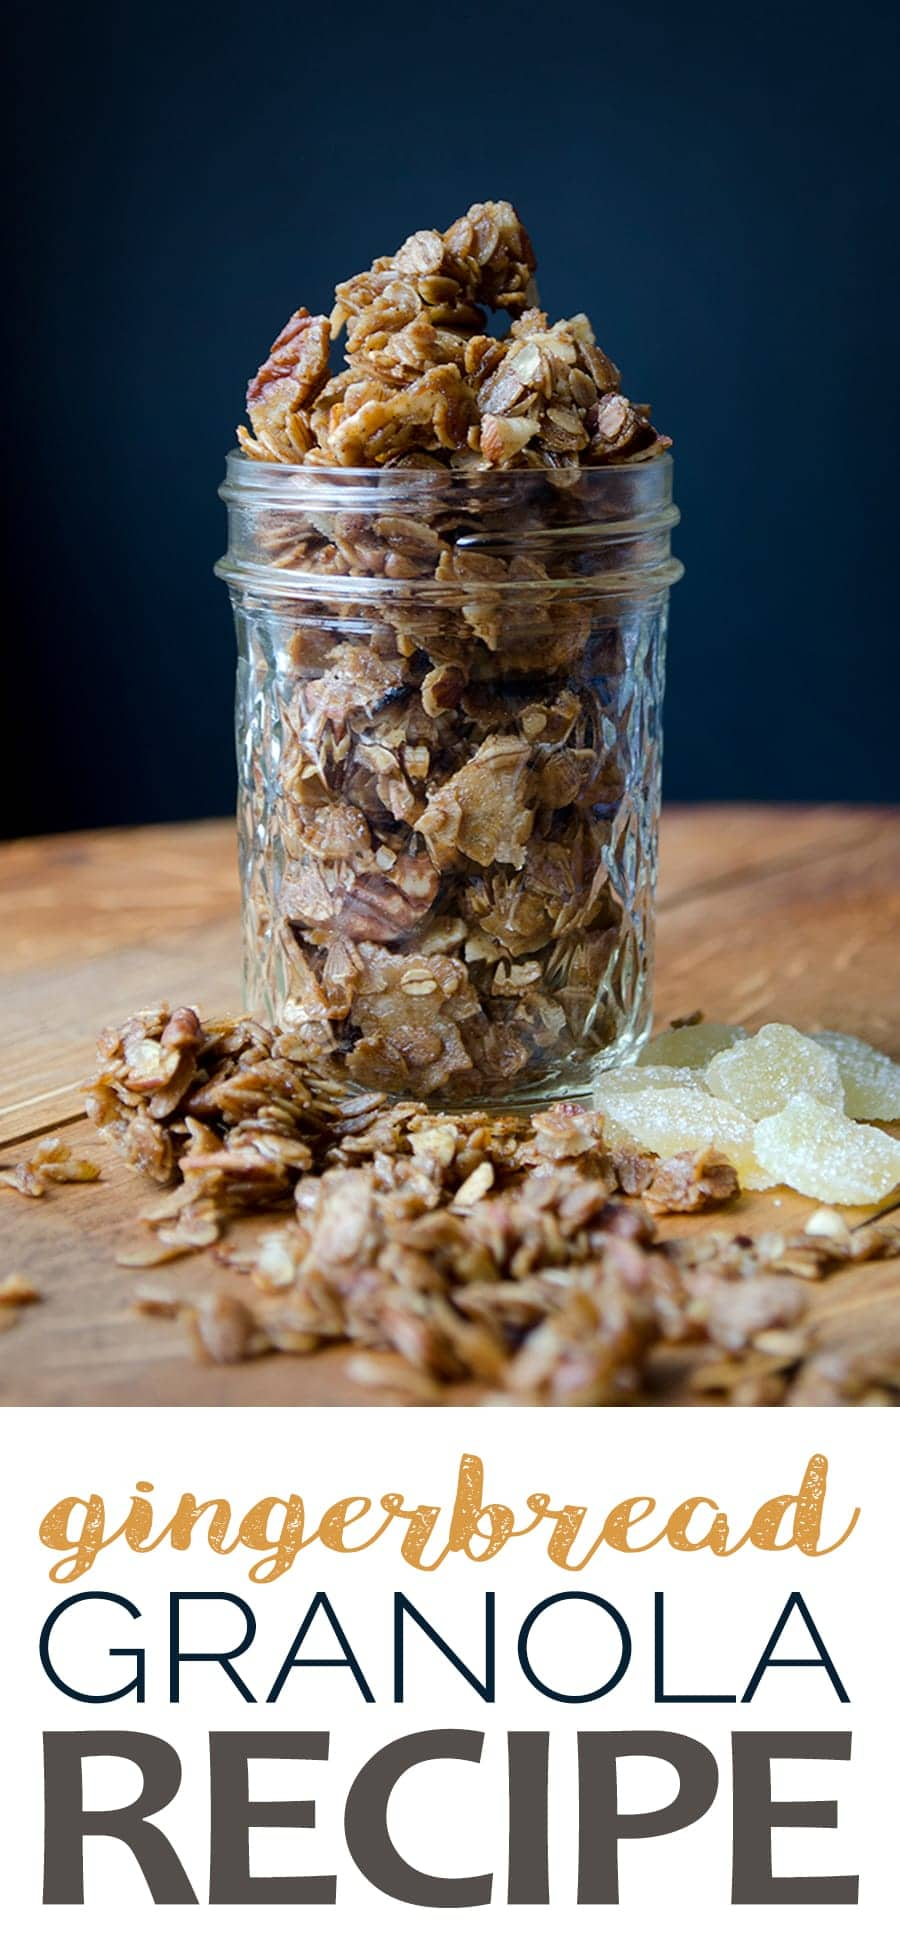 This Gingerbread Granola is super easy to make and great for snacking, yogurt parfaits or as a thoughtful homemade gift. Gingery, sweet, crunchy, nutty and so good, you'll want to eat this granola all year long! #gingerbread #granola #breakfastideas #christmasbreakfast